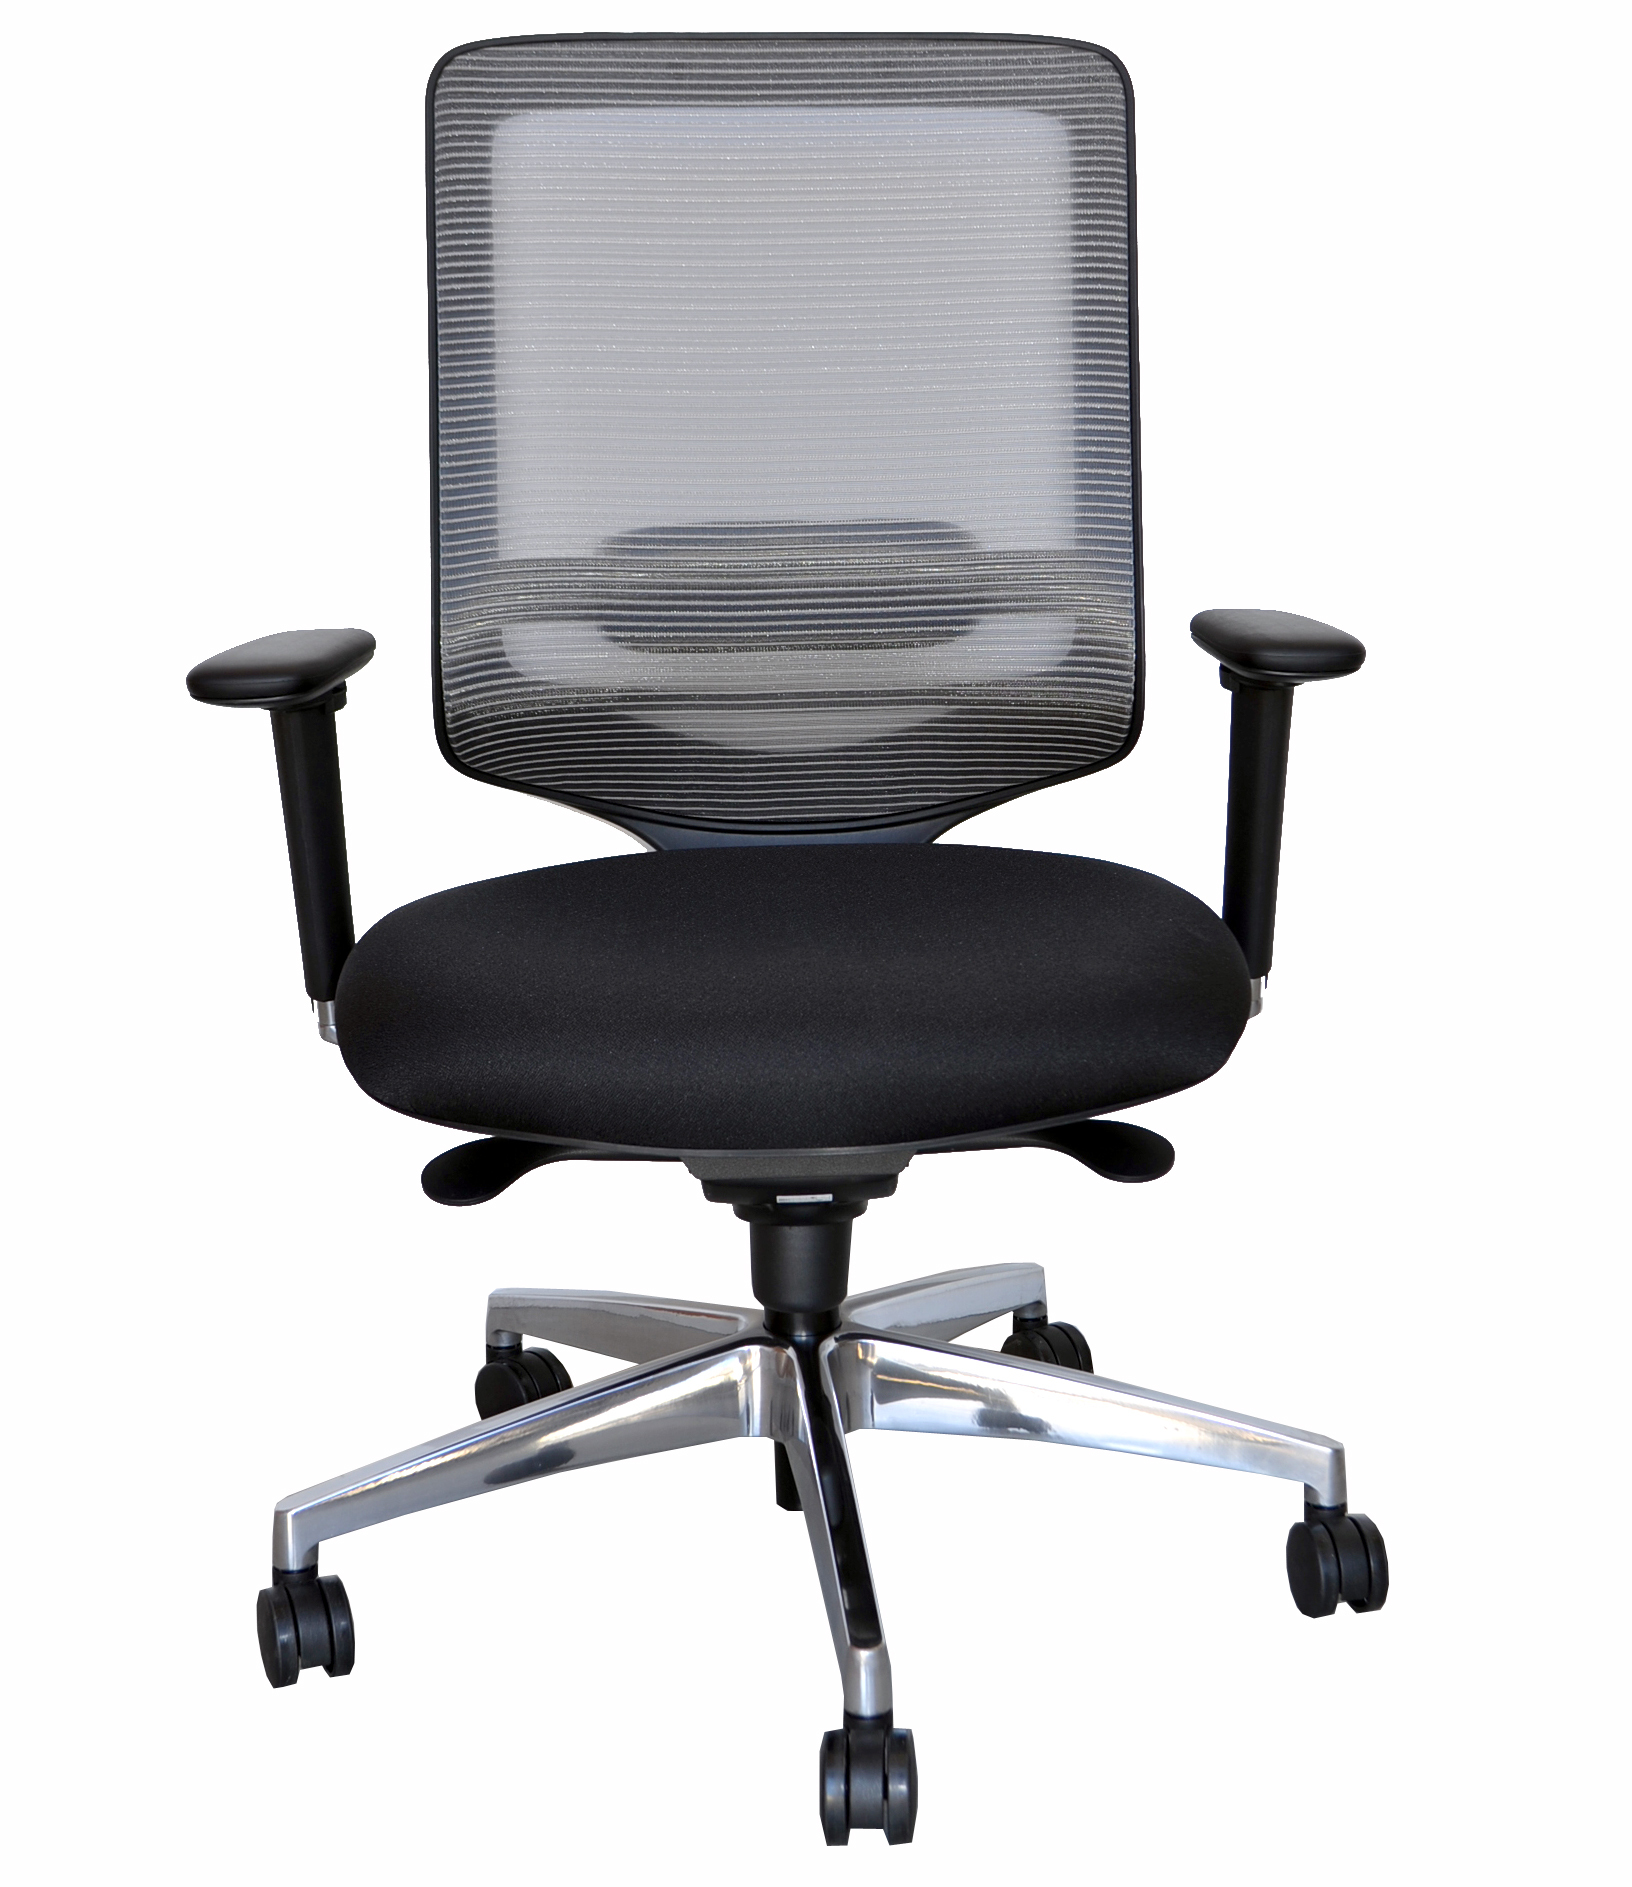 Direct Ergonomics | Sydney Office Furniture | Ergonomic Furniture | Ergonomic Seating | Executive and Task Seating | Meeting Room Chair | Breeze 300